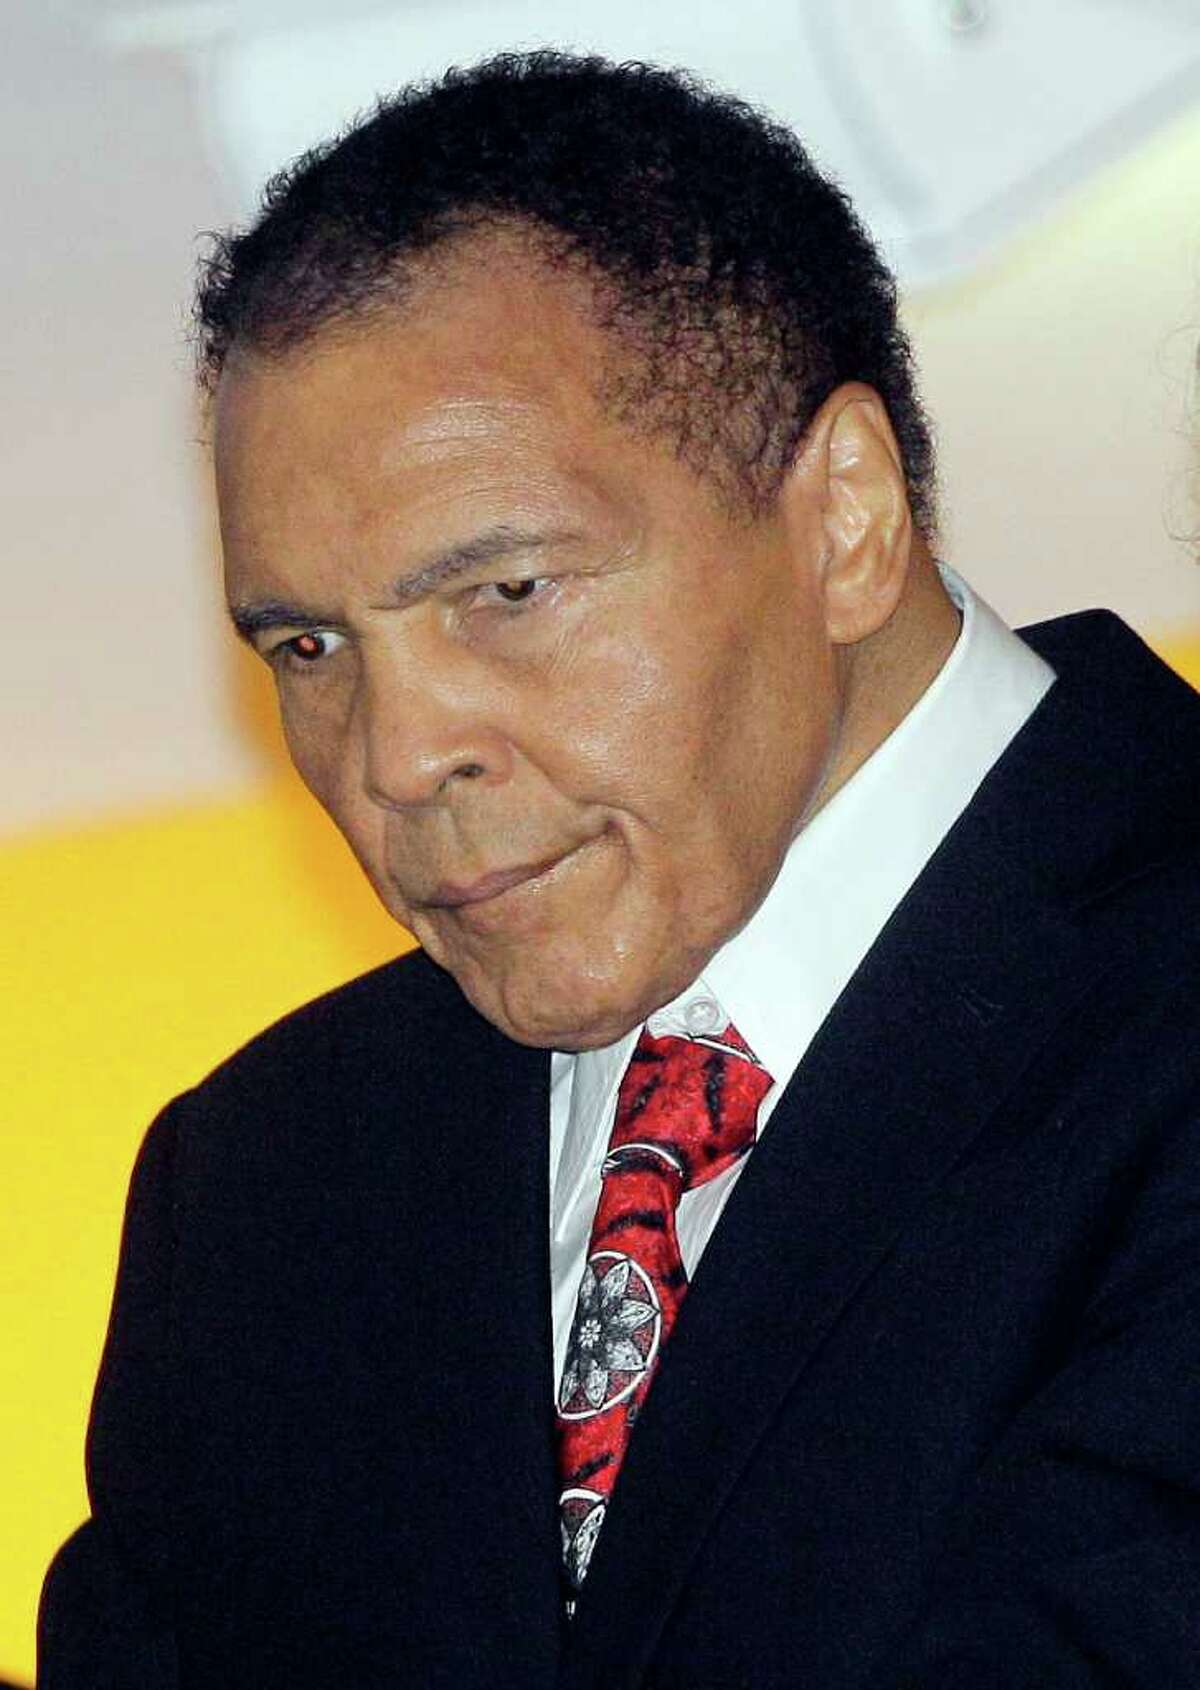 Boxing great Muhammad Ali looks down from a balcony at friends while attending a celebration for his 70th birthday at the Muhammad Ali Center on Saturday, Jan. 14, 2012, in Louisville, Ky. Ali turns 70 Tuesday. (AP Photo/Mark Humphrey)